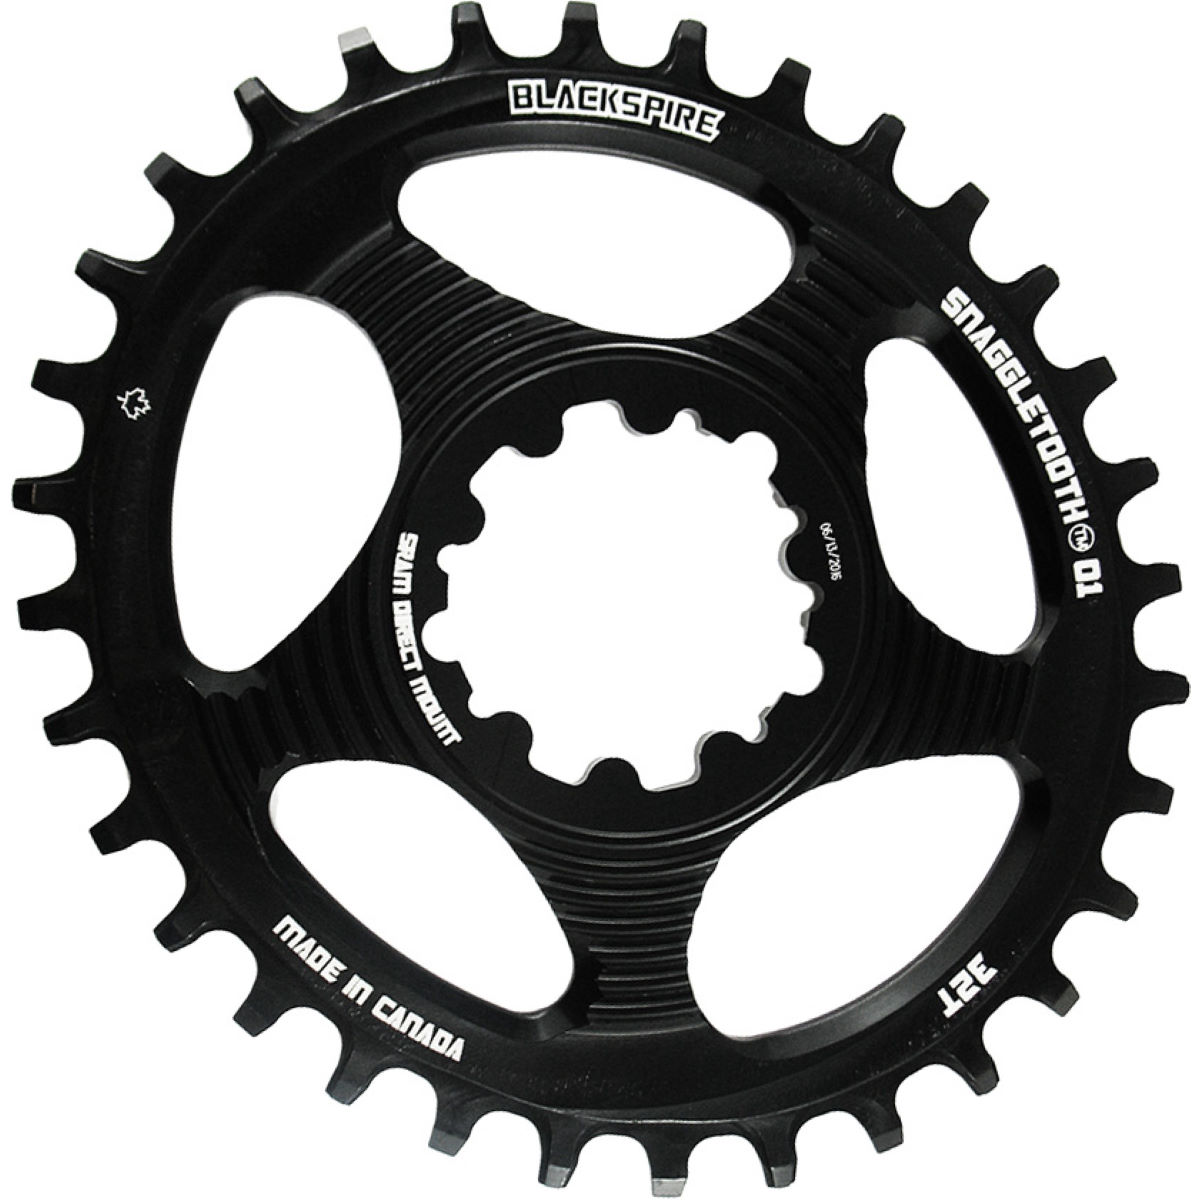 Blackspire Blackspire Snaggletooth Narrow Wide Oval Chainring SRAM   Chain Rings